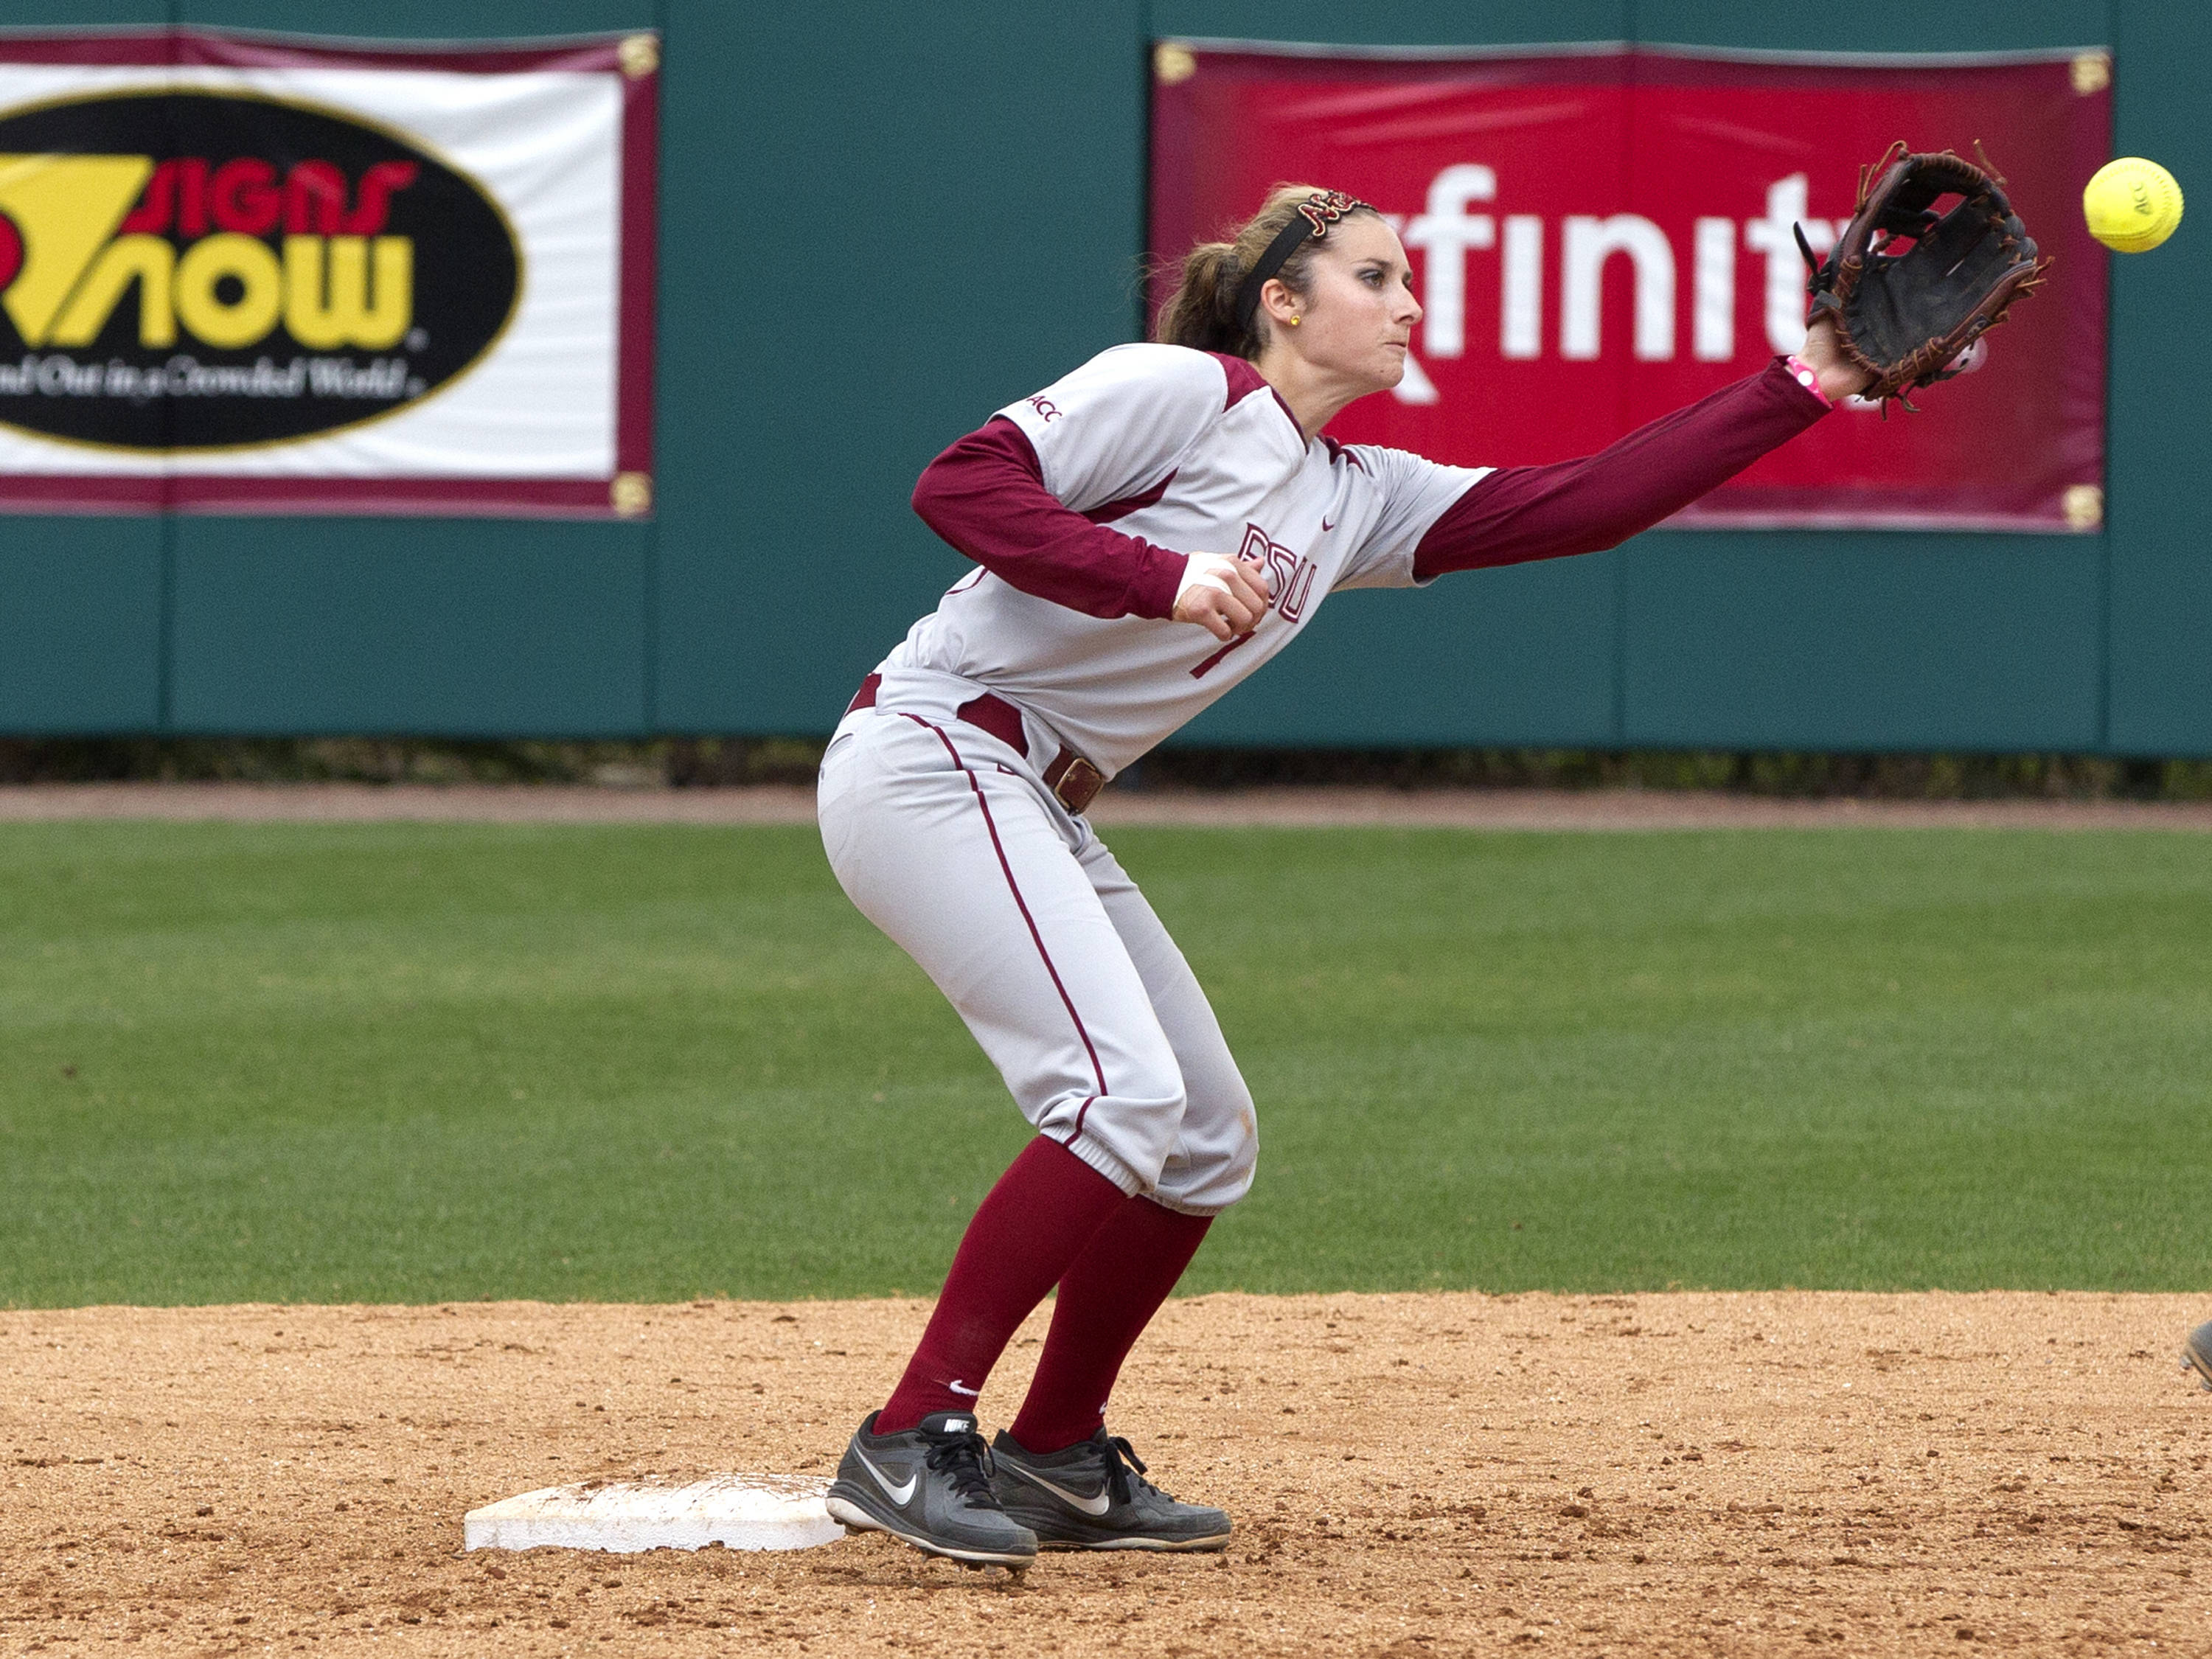 Maddie O'Brien (7), FSU vs Minnesota, 03/17/13. (Photo by Steve Musco)